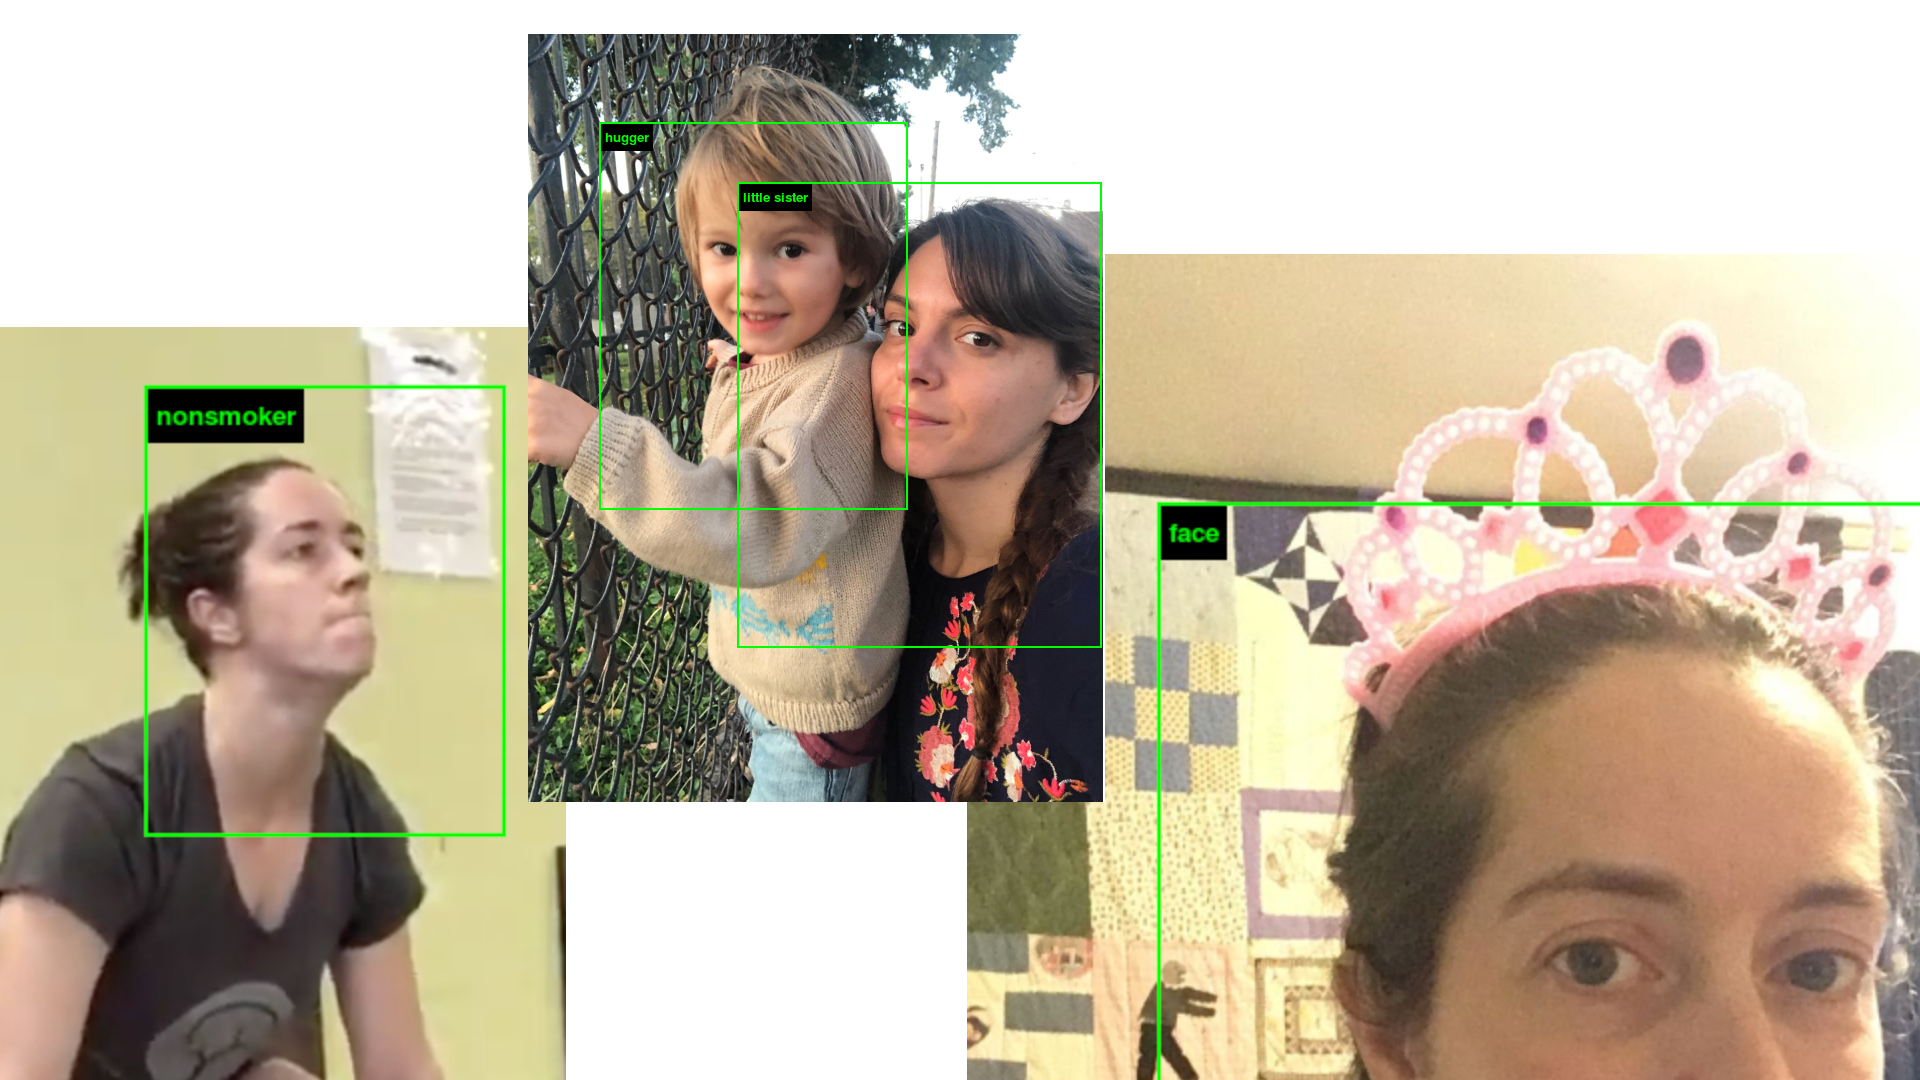 See How AI Racially Stereotypes You